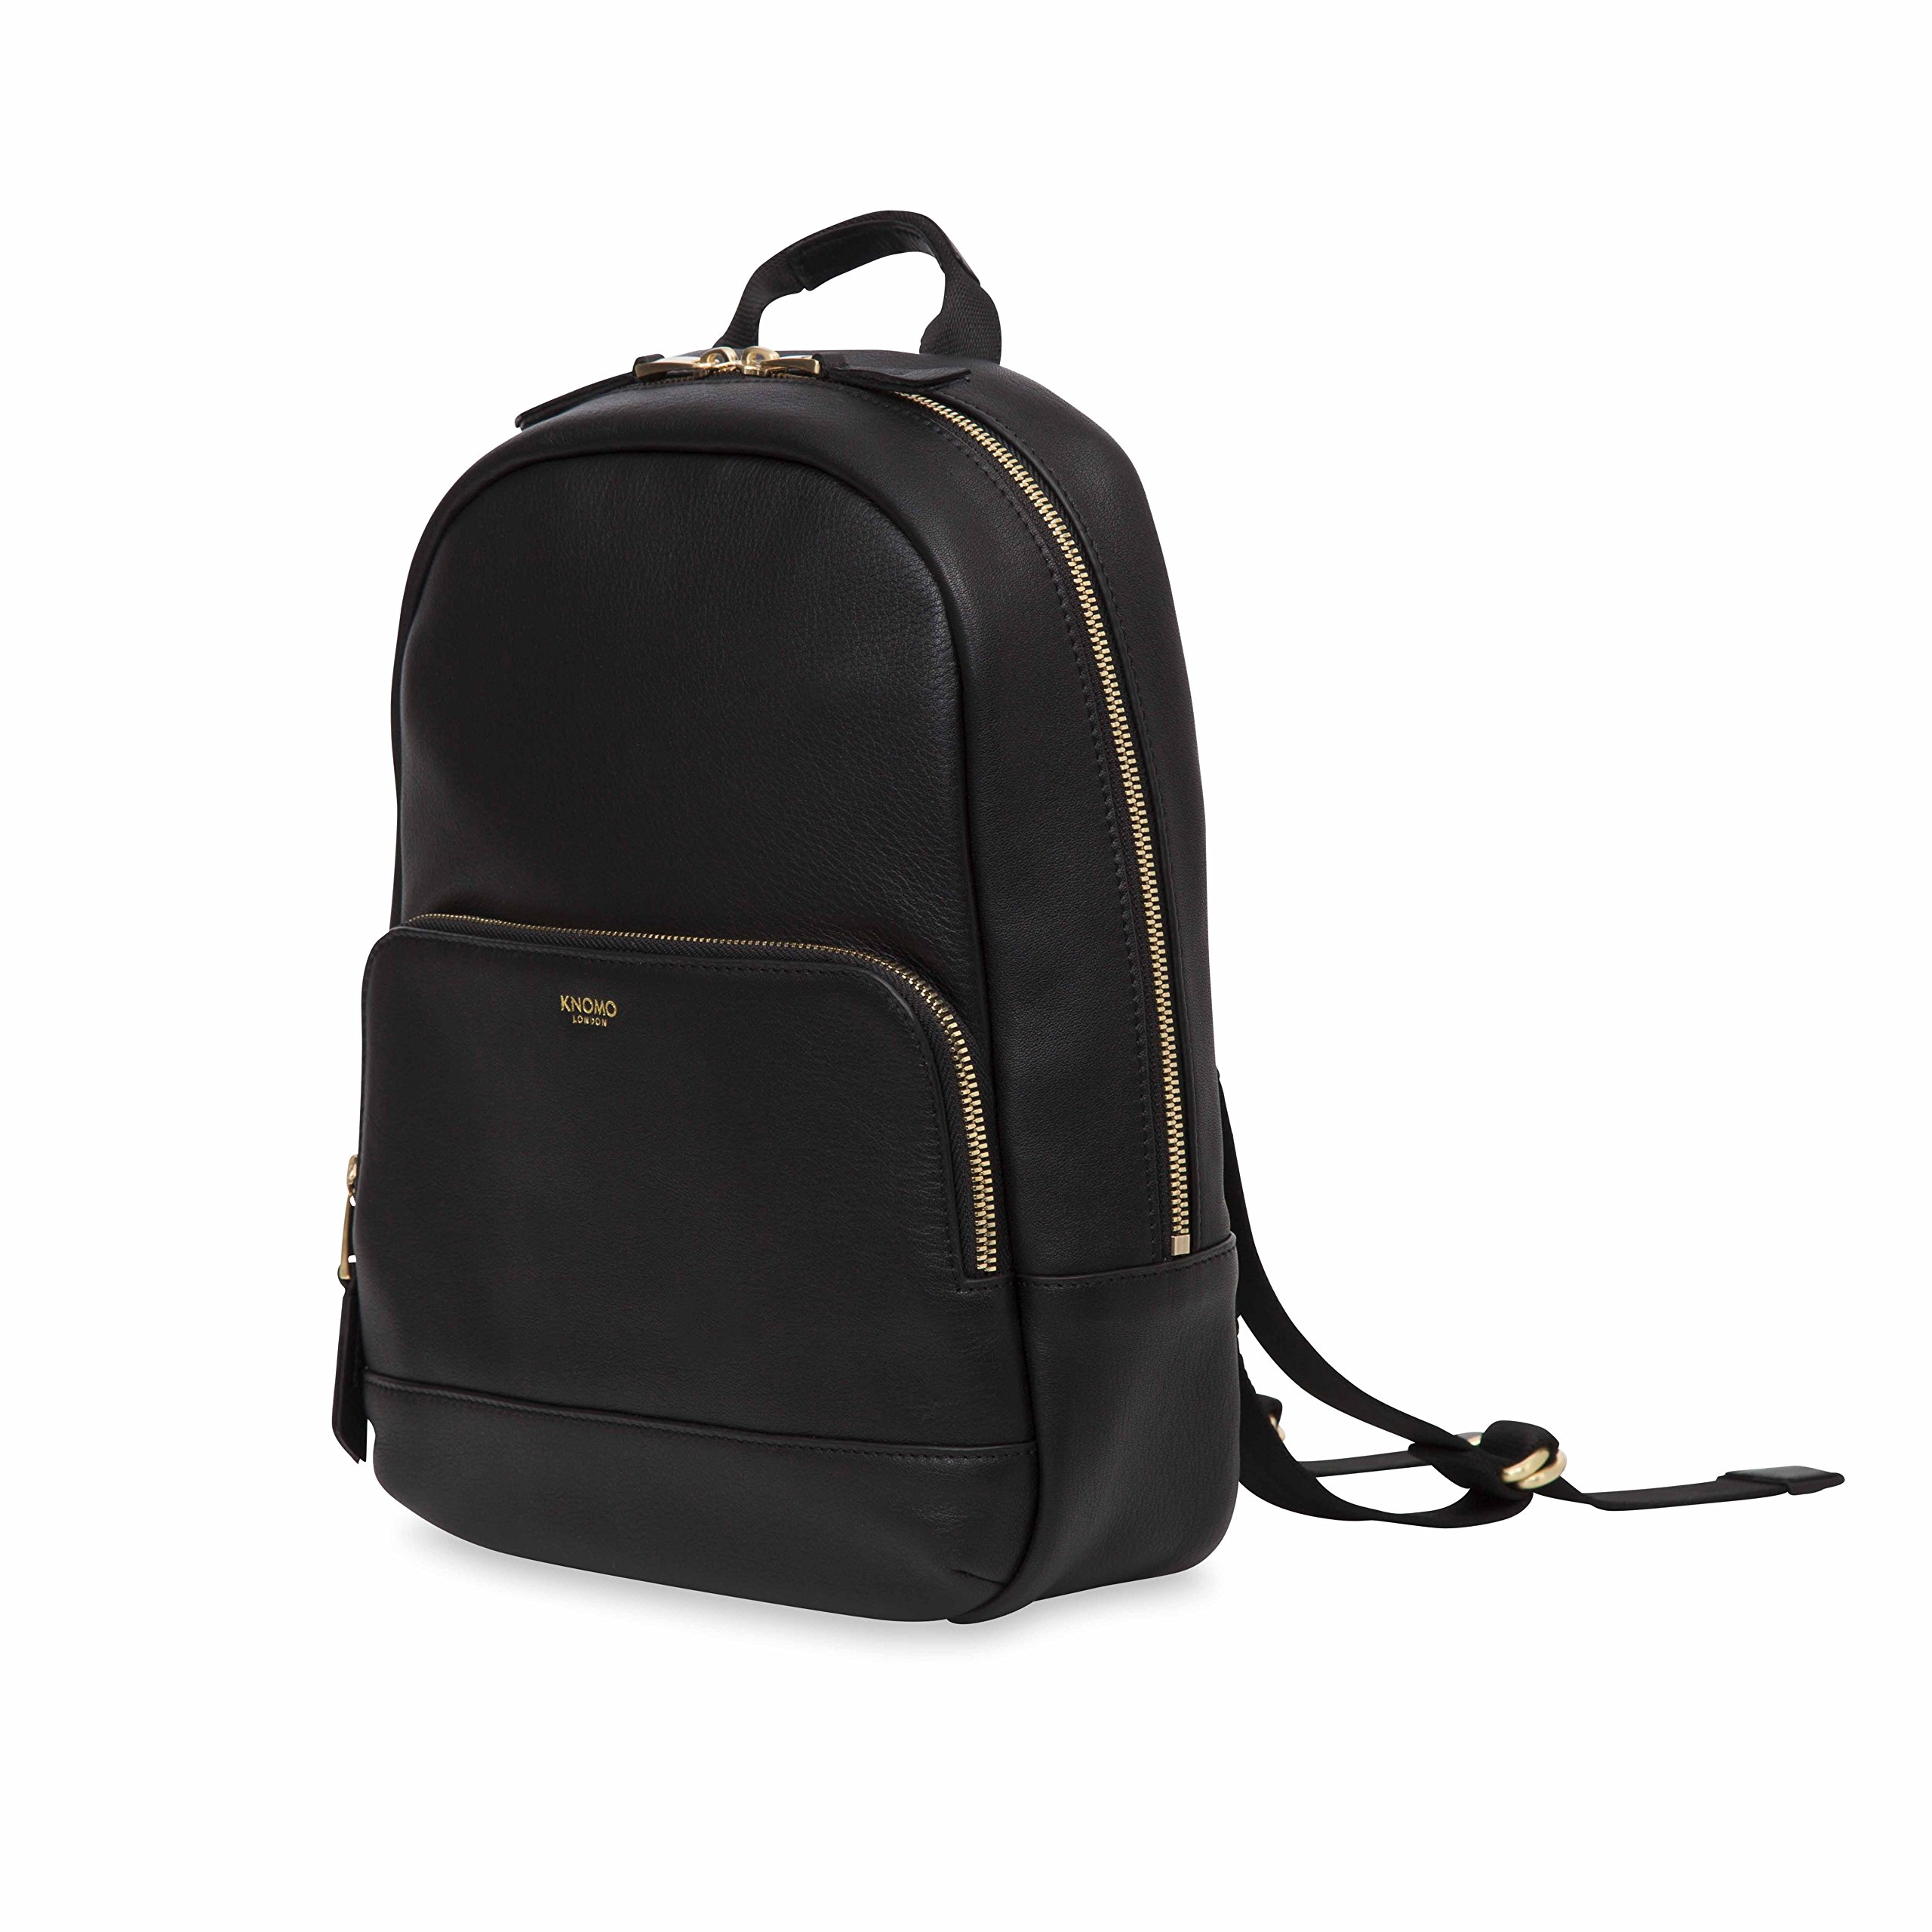 Knomo Luggage Women's Mini Mount Business Backpack, Black, One Size by Knomo